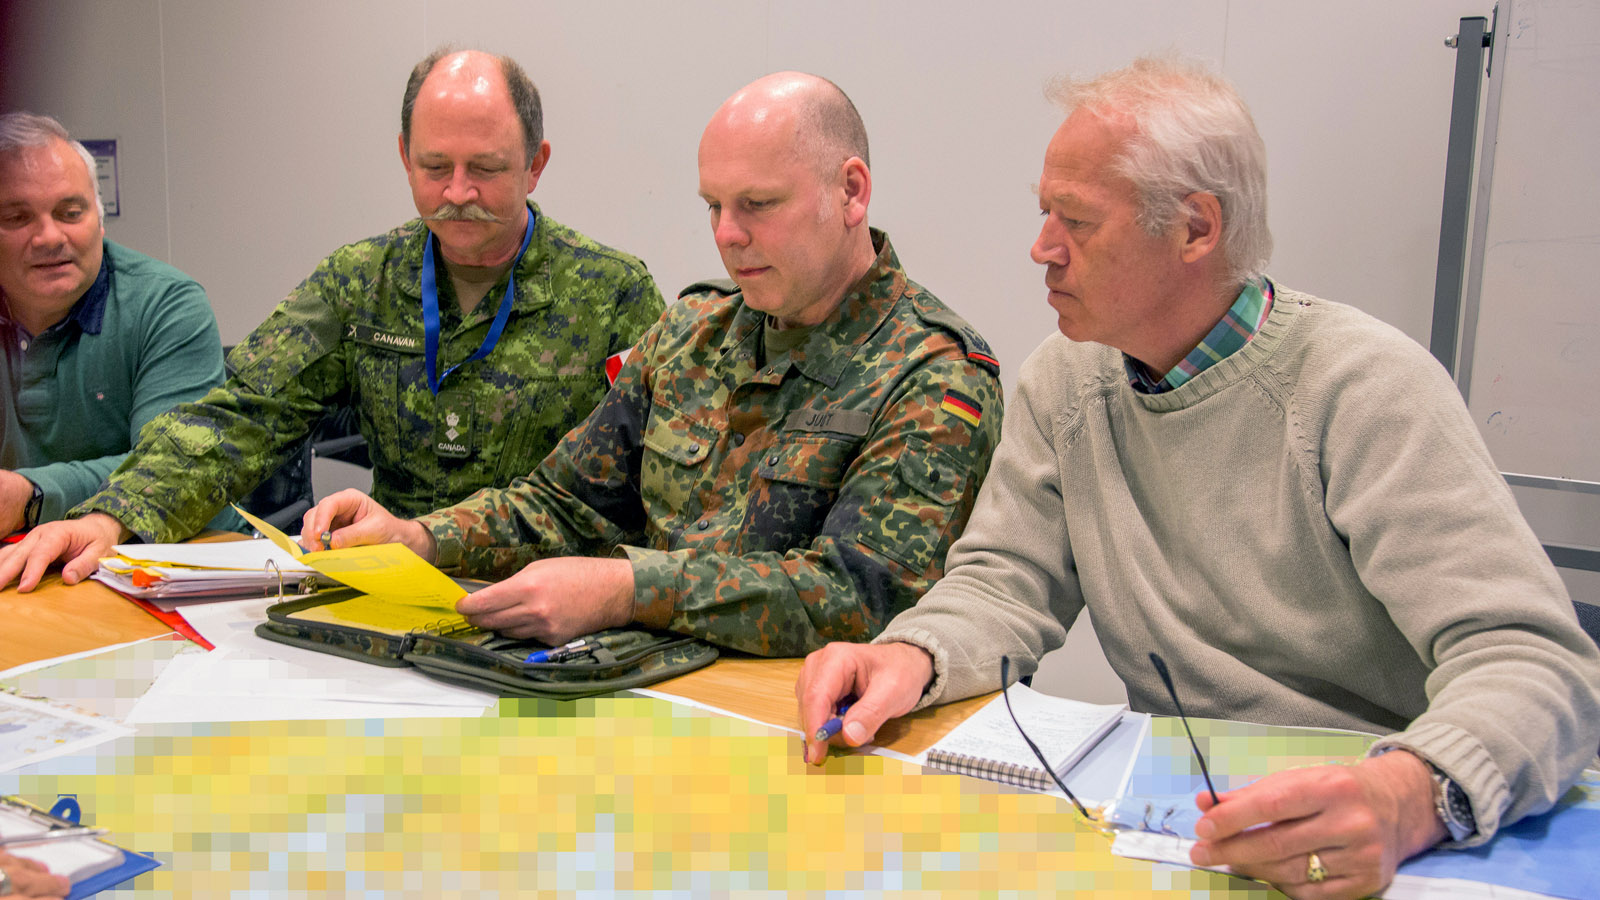 TRIDENT JUNCTURE 2018 MEL/MIL Incident Development Workshop: Developing joint solutions to joint warfighting challenges